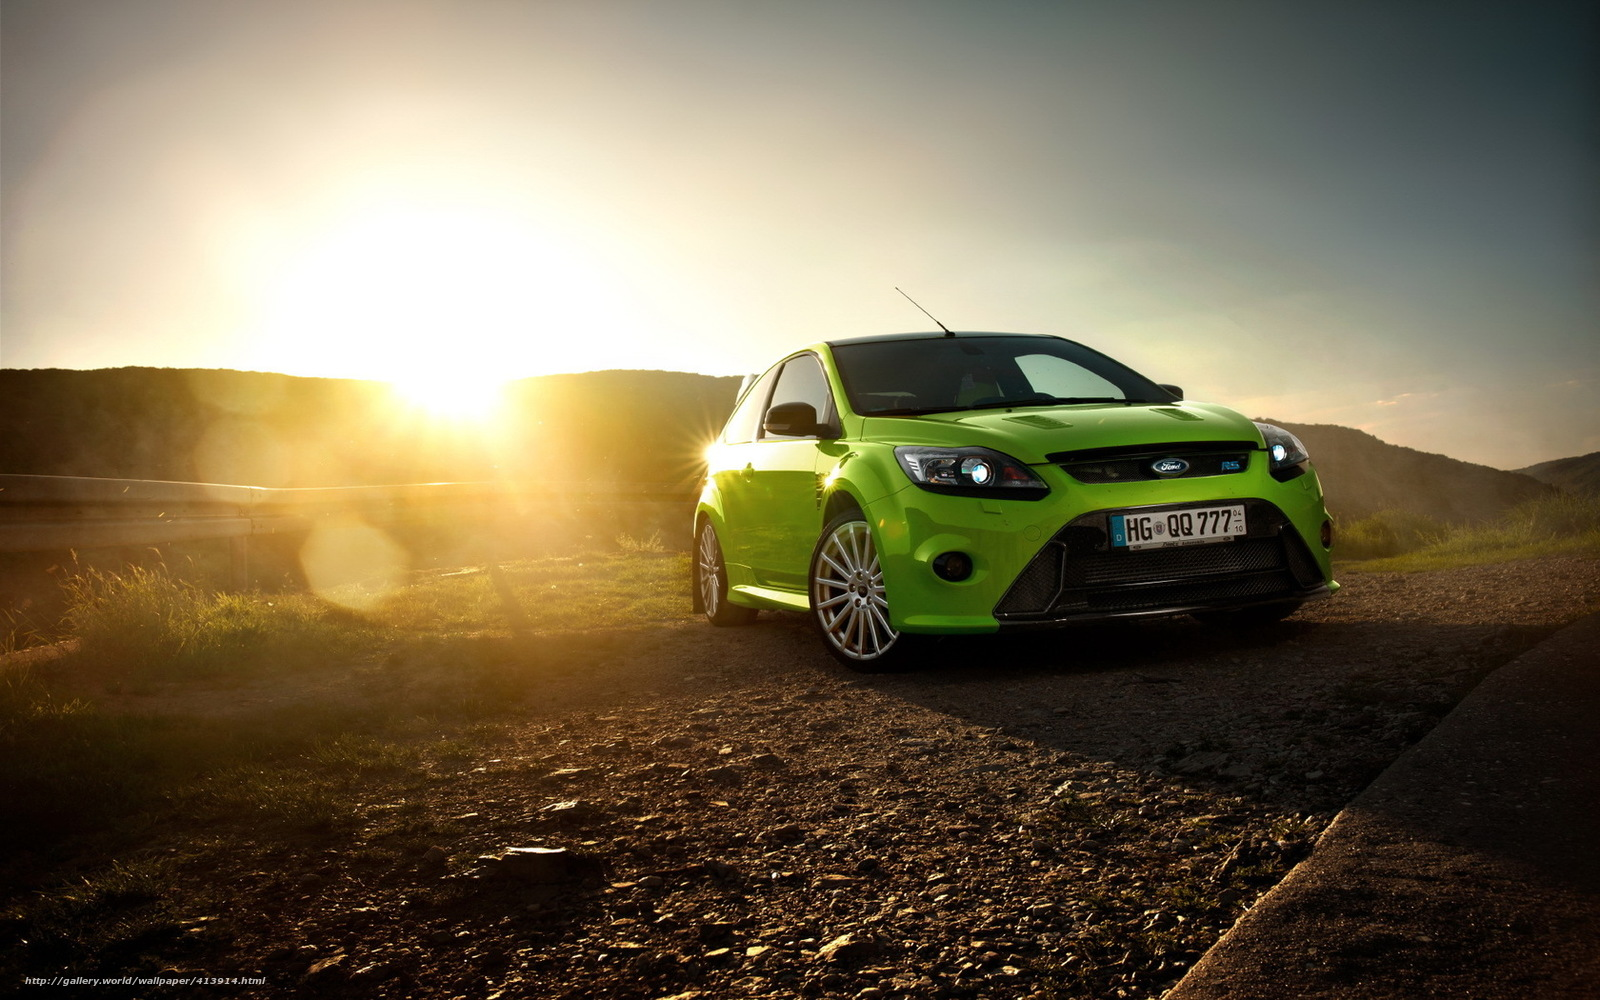 Wallpaper Focus >> Download wallpaper Ford Focus, sun, highlight, ford free desktop wallpaper in the resolution ...